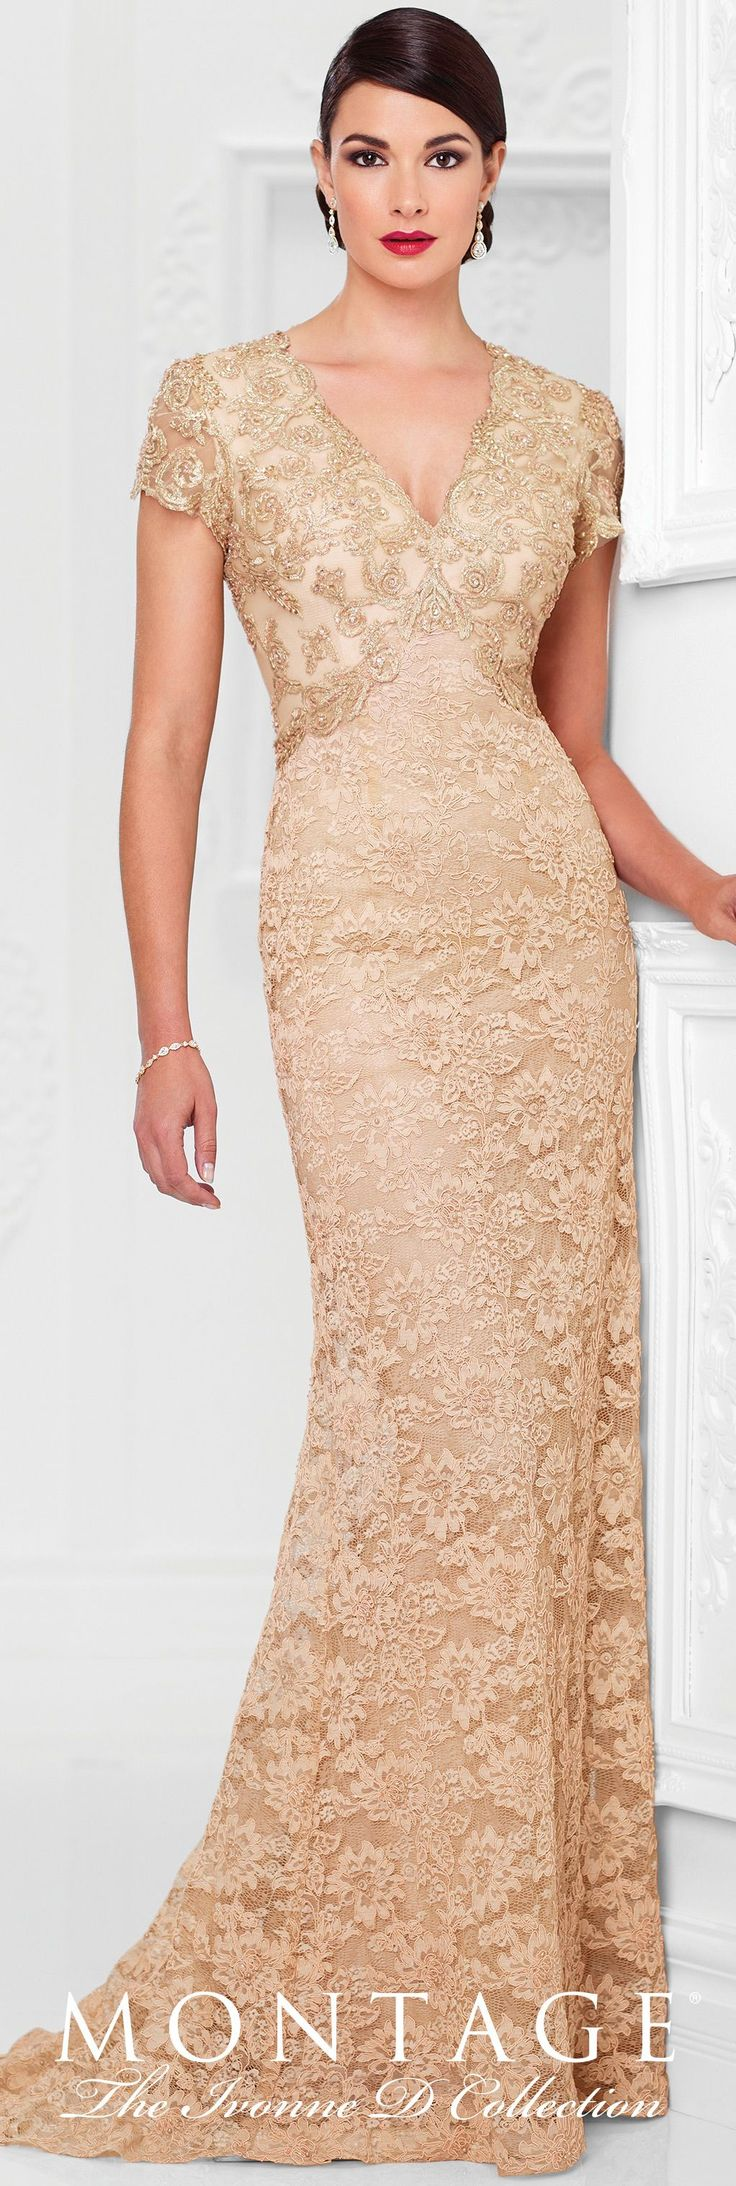 Ivonne D Exclusively for Mon Cheri - 117D72 - Lace A-line gown with hand-beaded illusion scalloped short sleeves, beaded V-neckline, beaded inverted empire waistline, keyhole back, slight sweep train.Sizes: 4 – 20Color: Gold